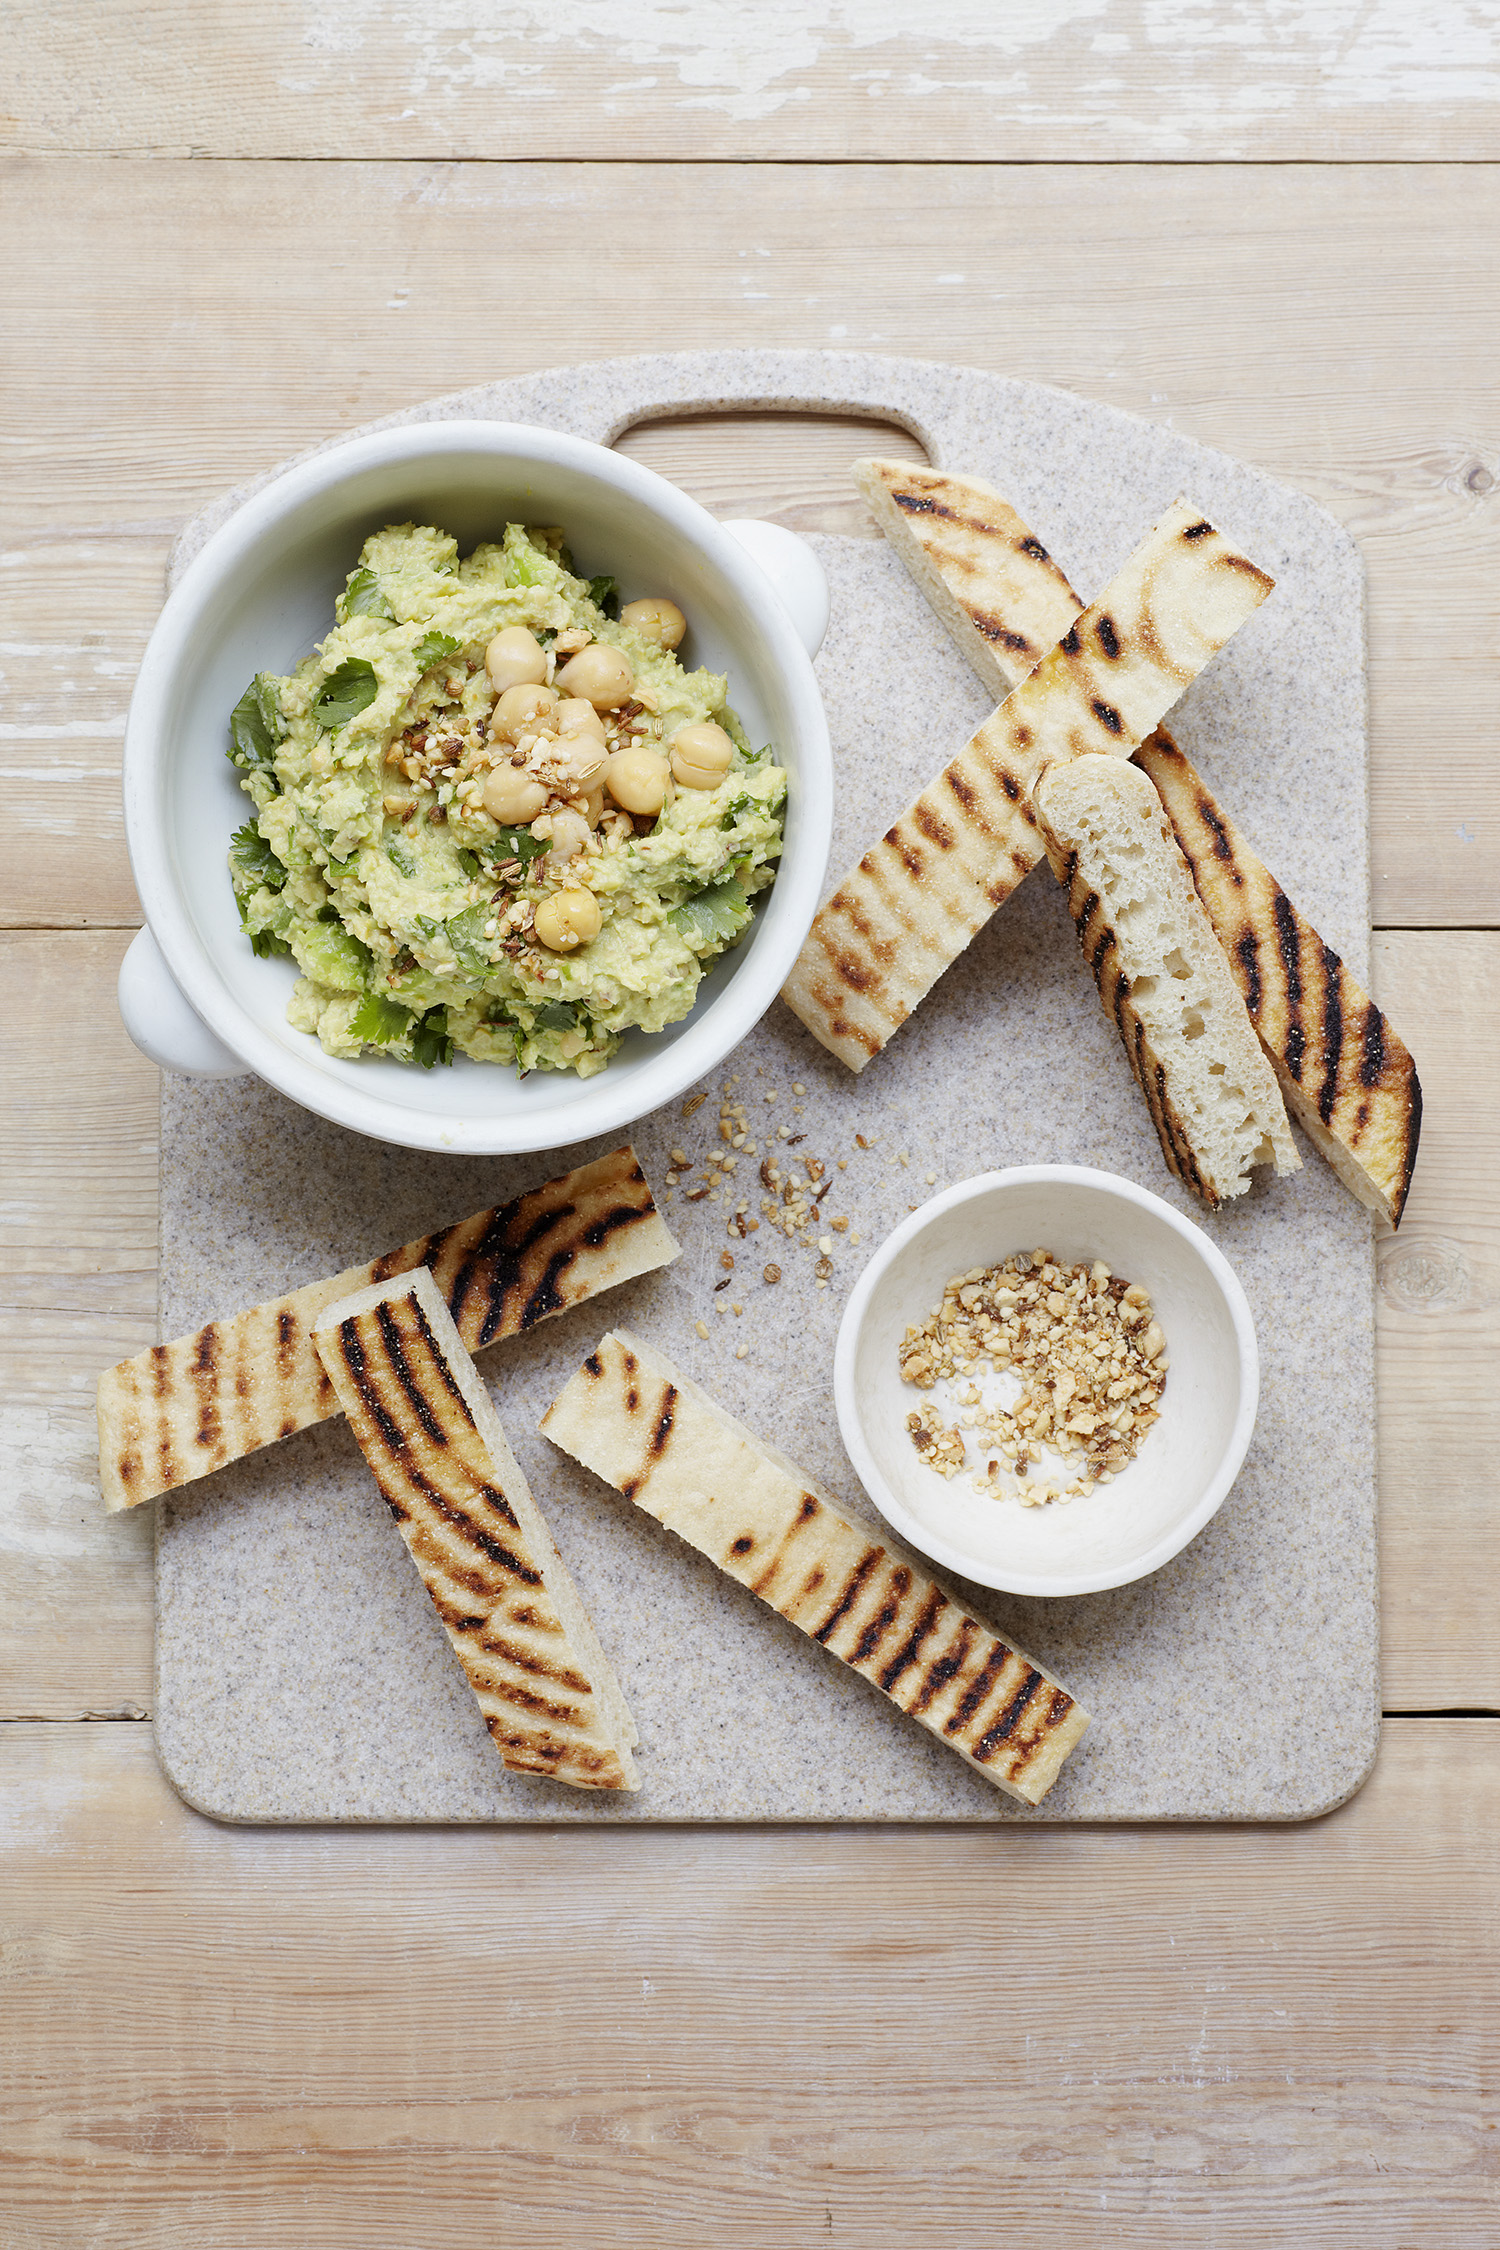 Avocado Hummus and Roasted Dukkah Photograph Clare Winfield, Prop Styling Wei Tang (from The Goodness of Avocado)